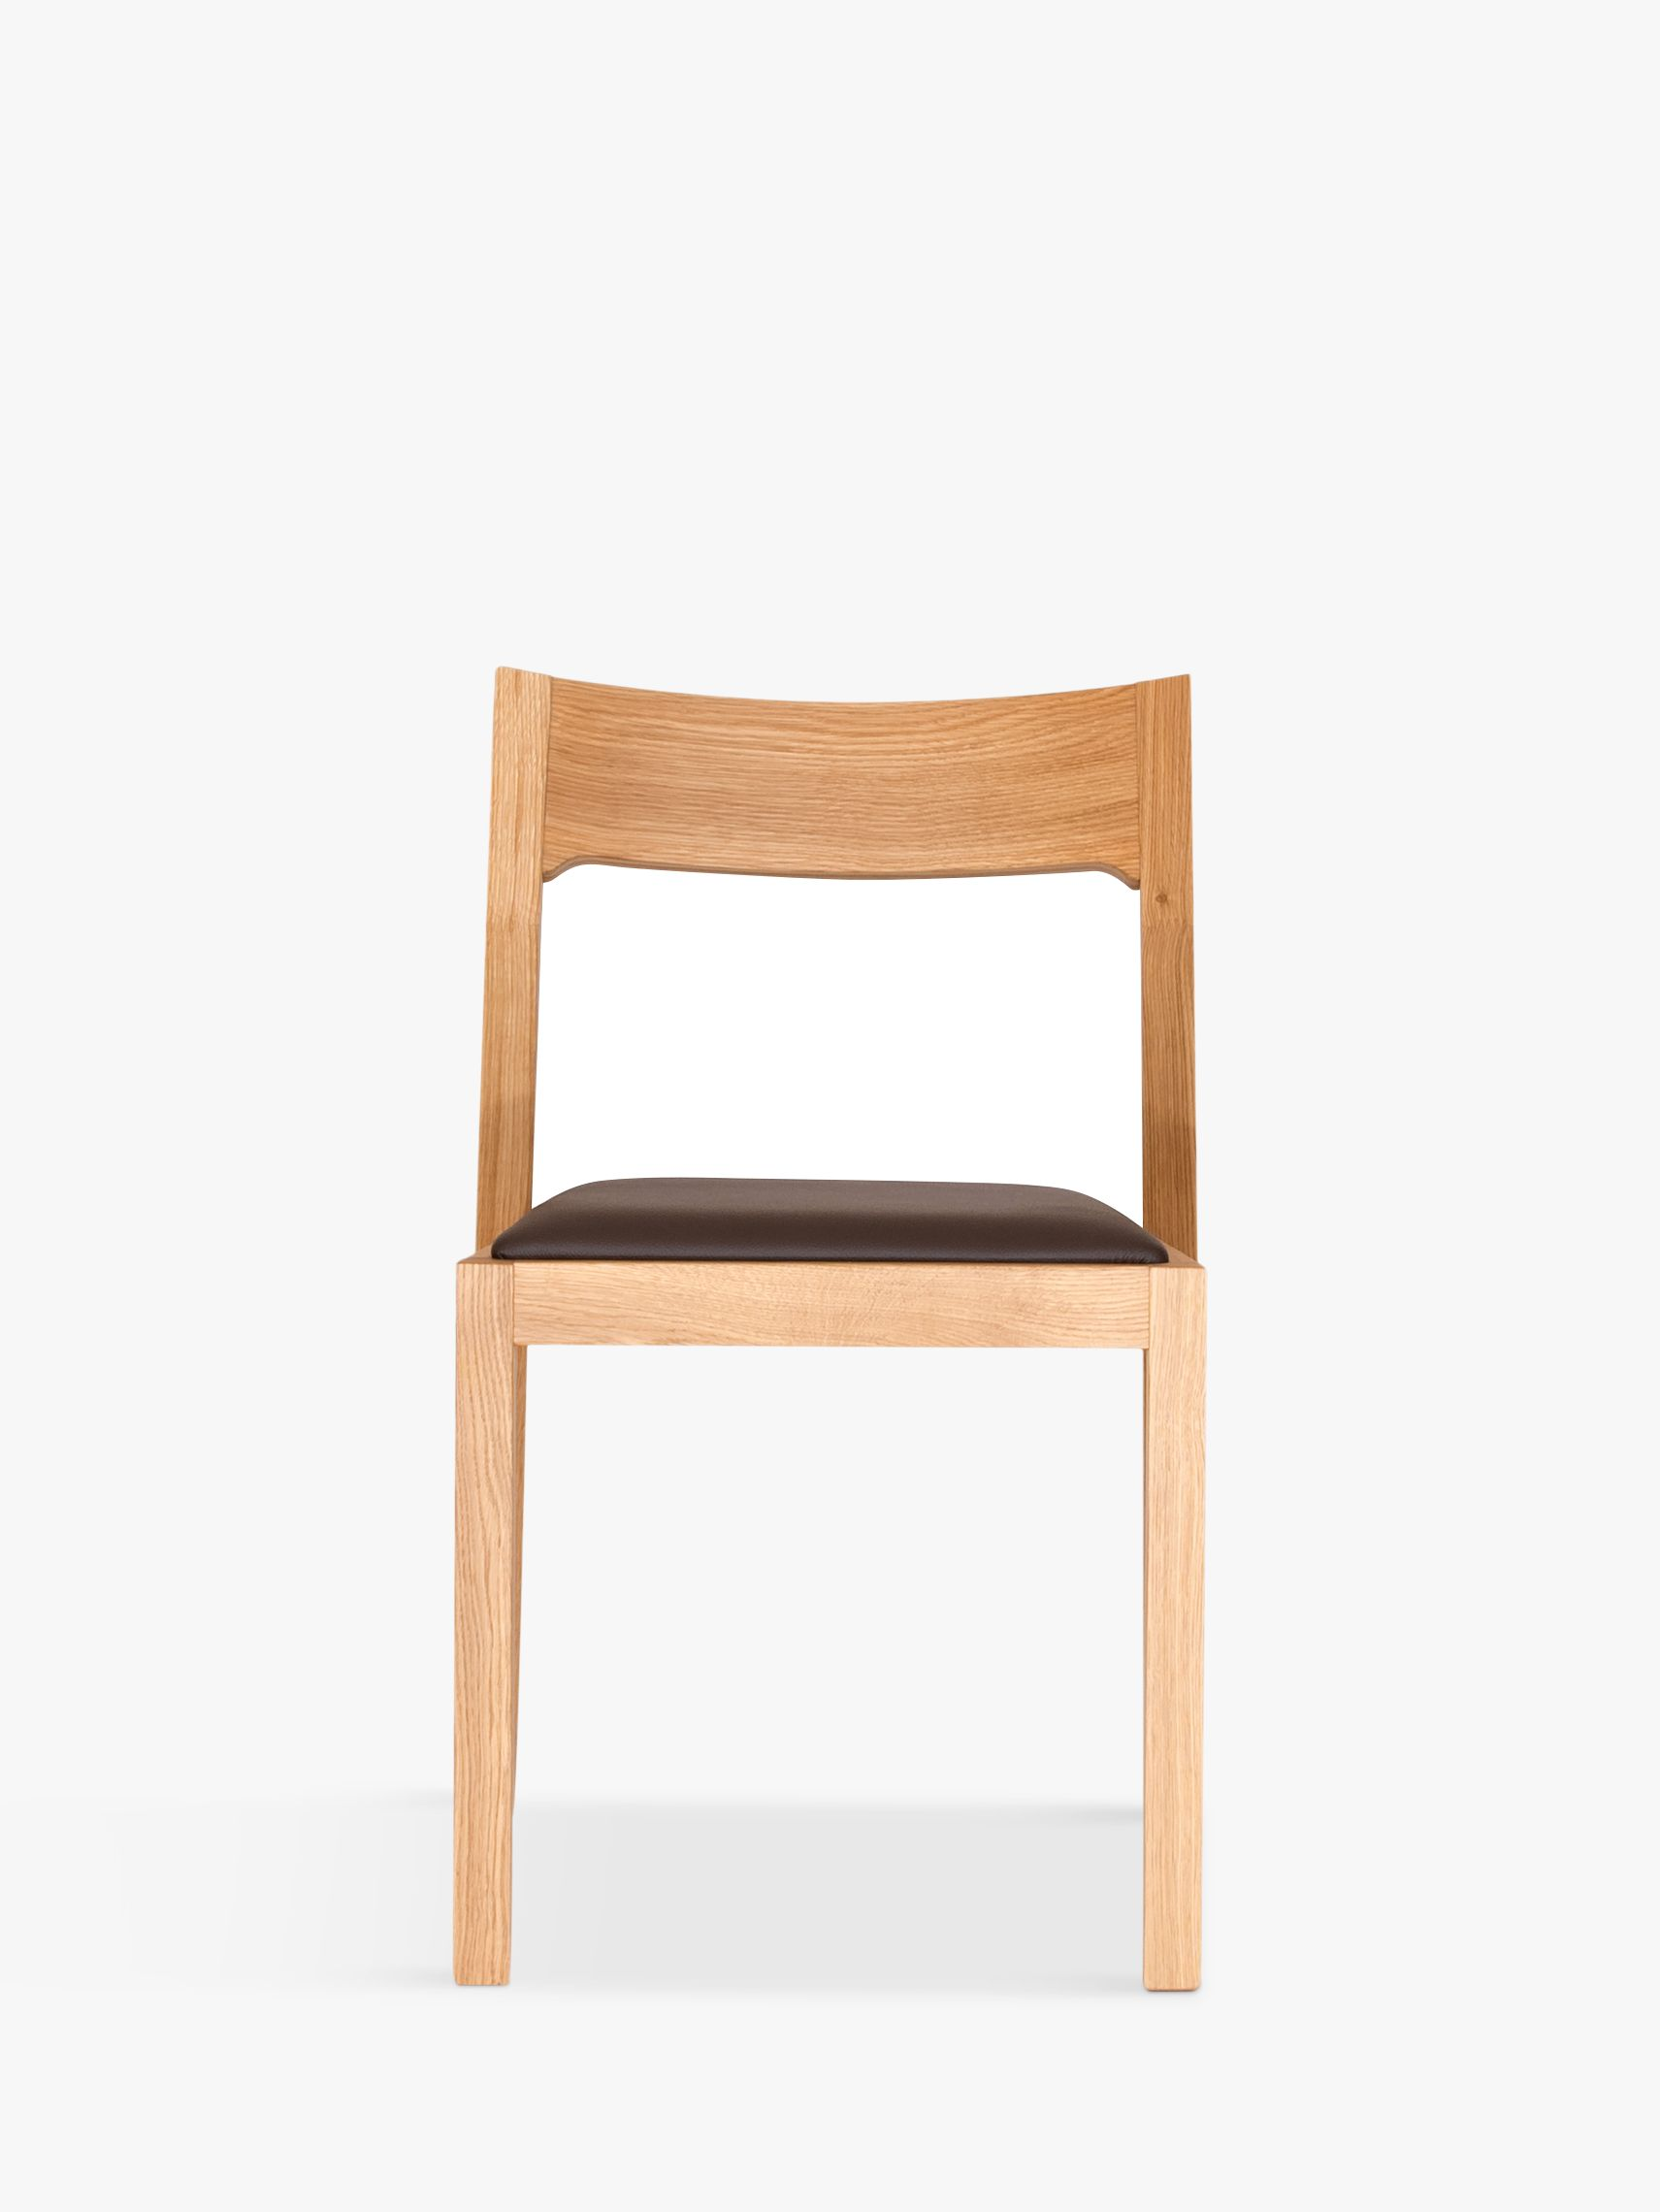 Case Matthew Hilton for Case Profile Dining Chair, Oak